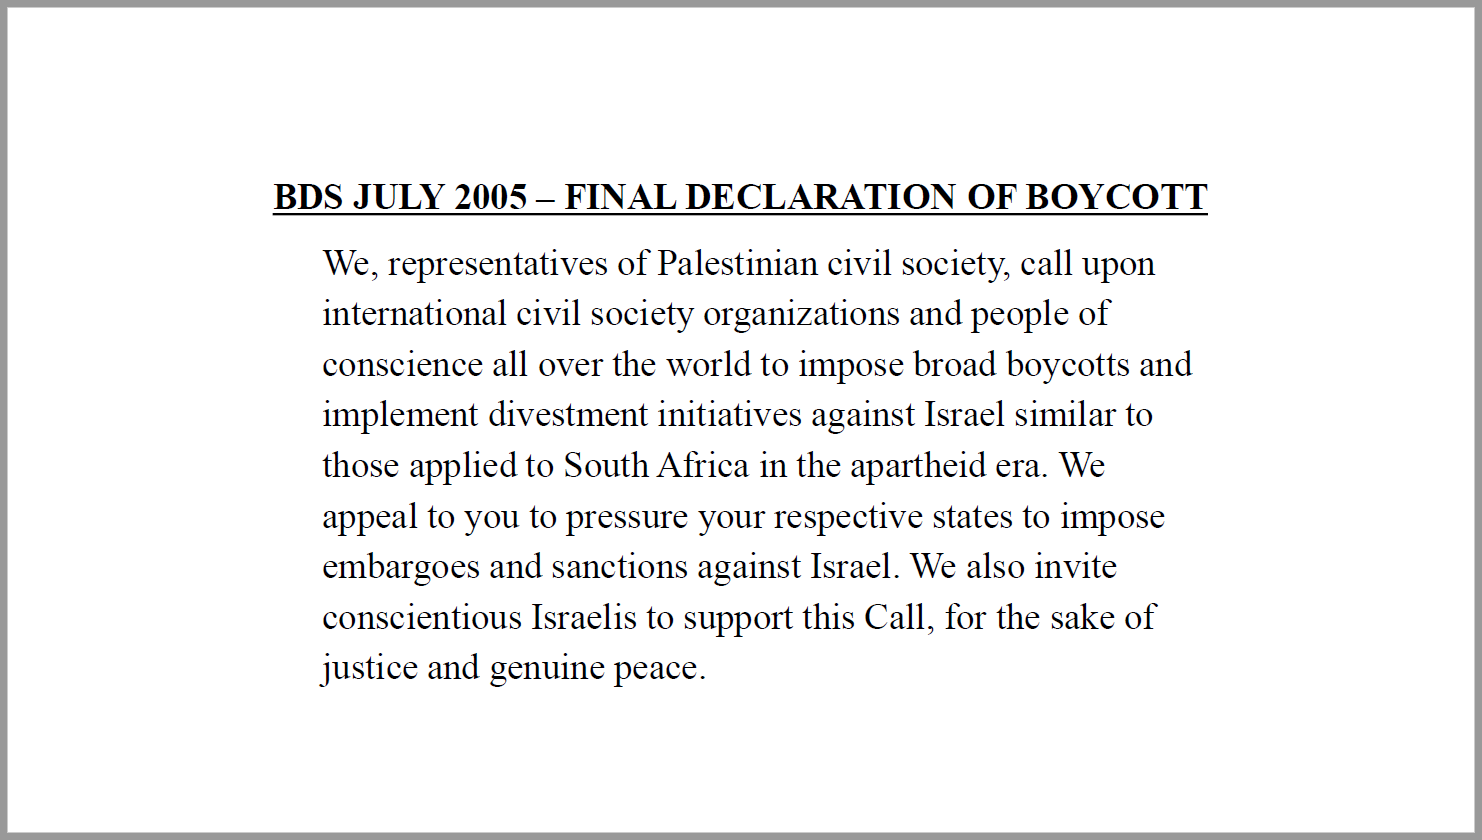 bds-history-july-2005-final-boycott-call